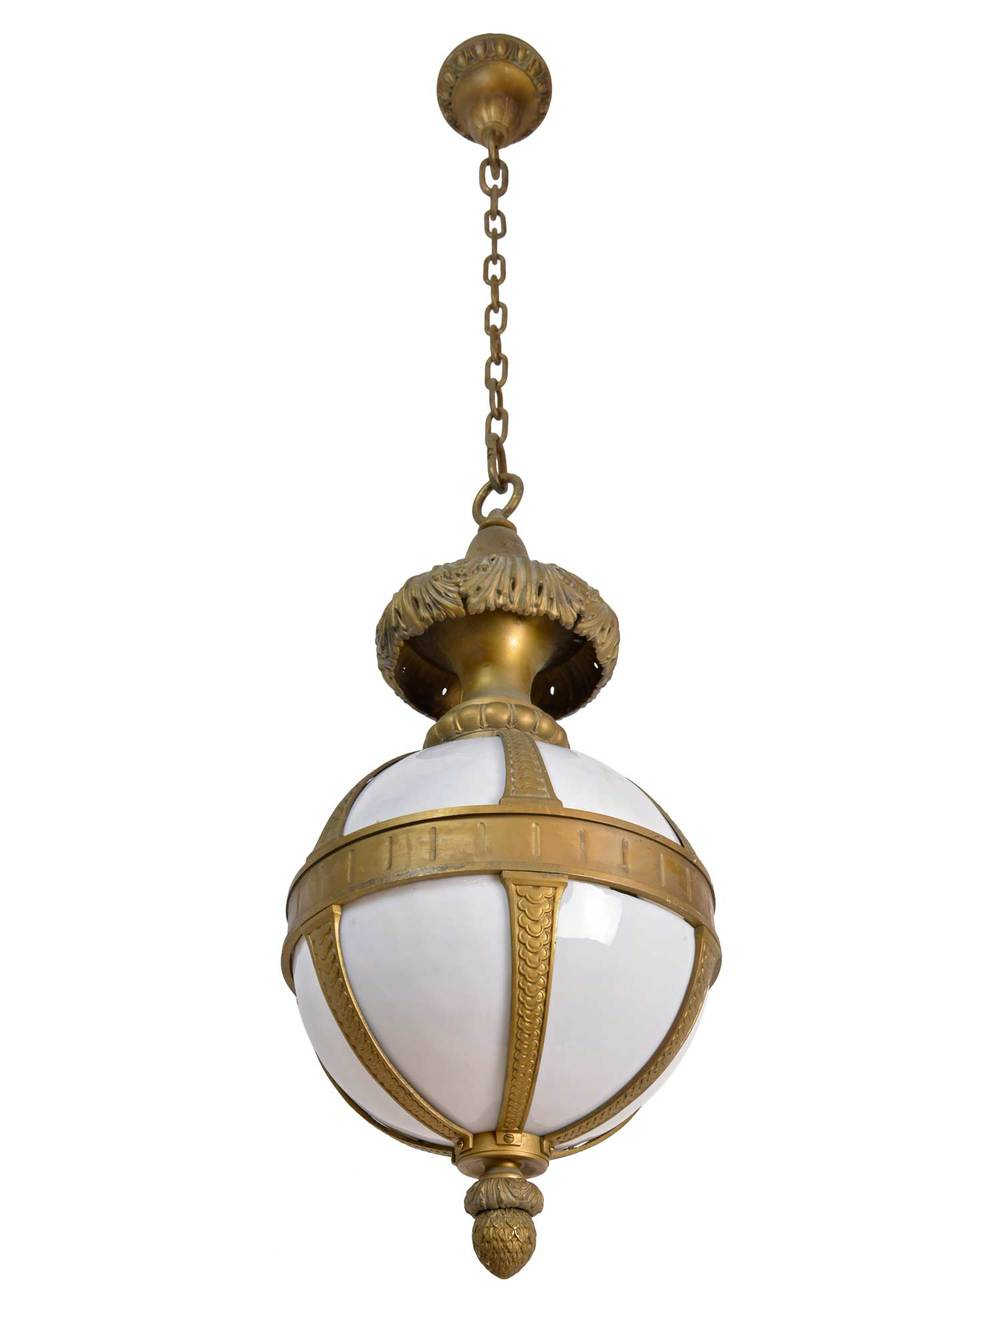 46136-Brass-Light-with-Bent-Glass-angle.jpg